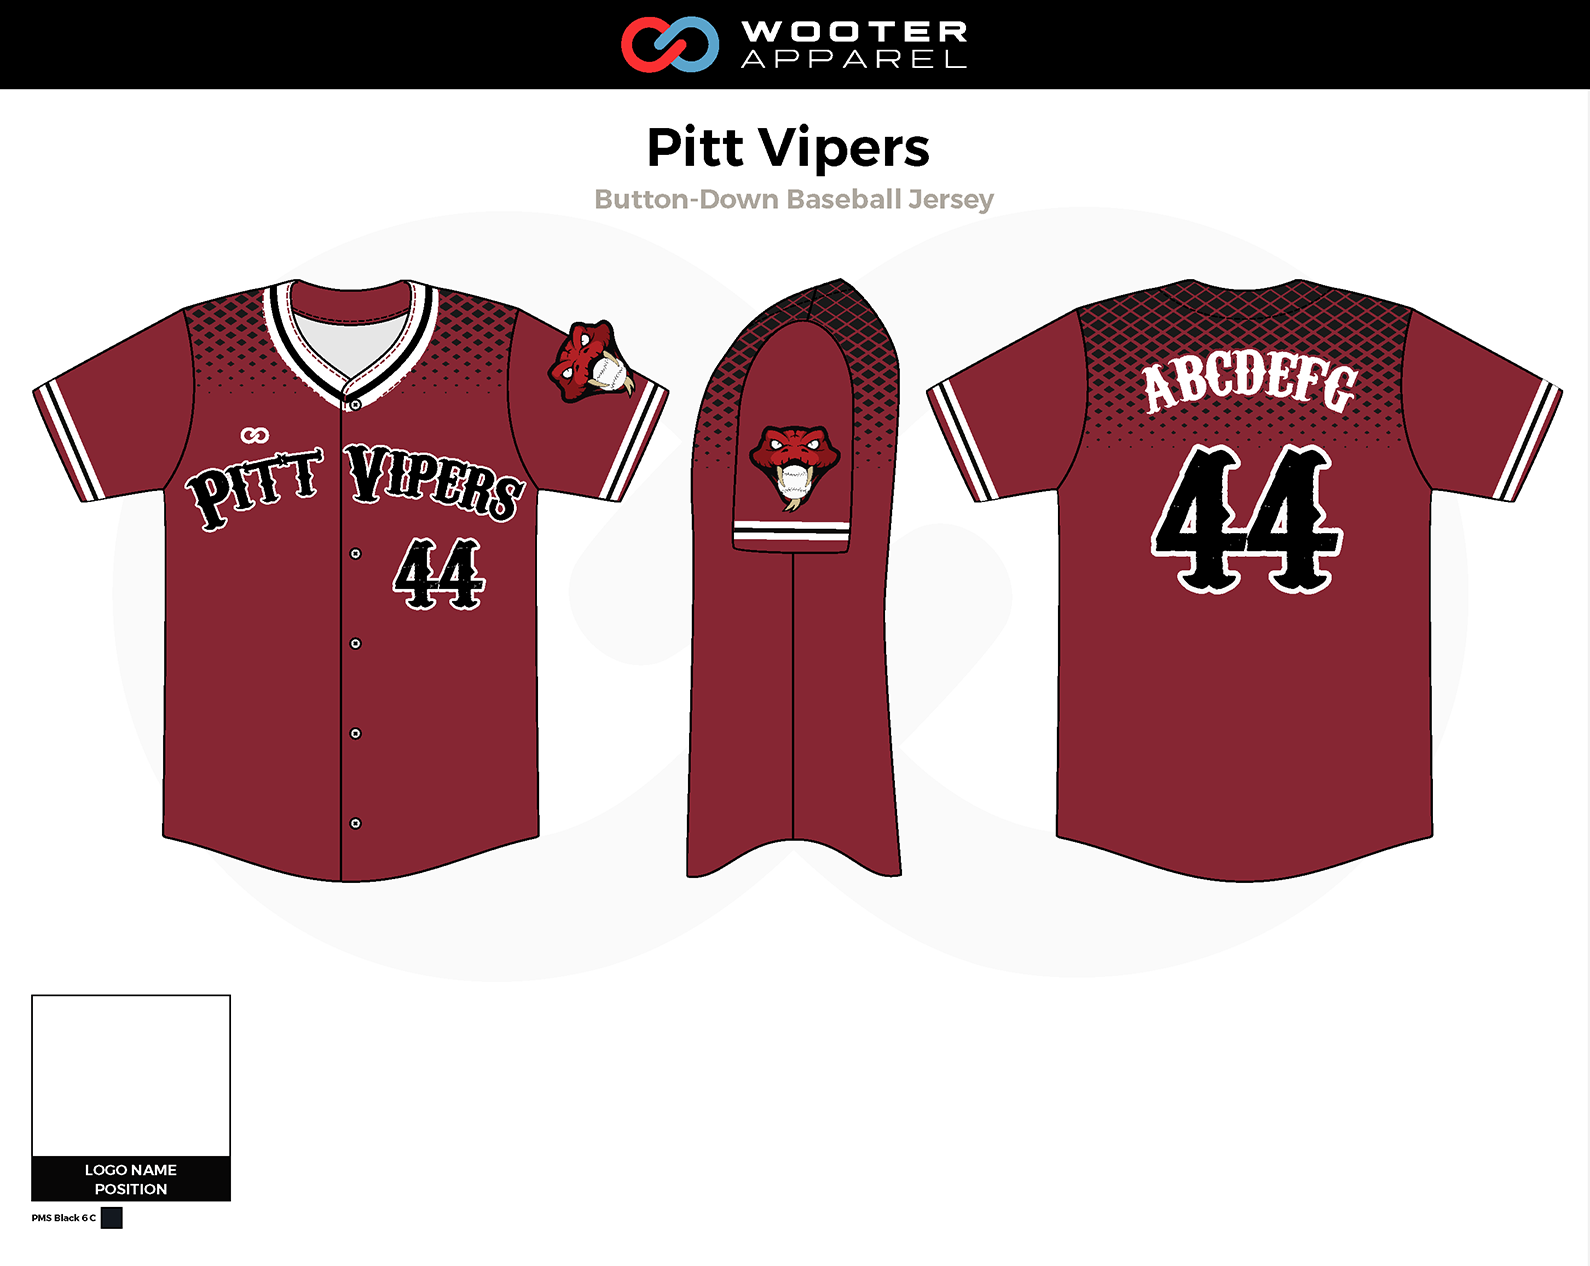 pitt vipers_Page_7.png